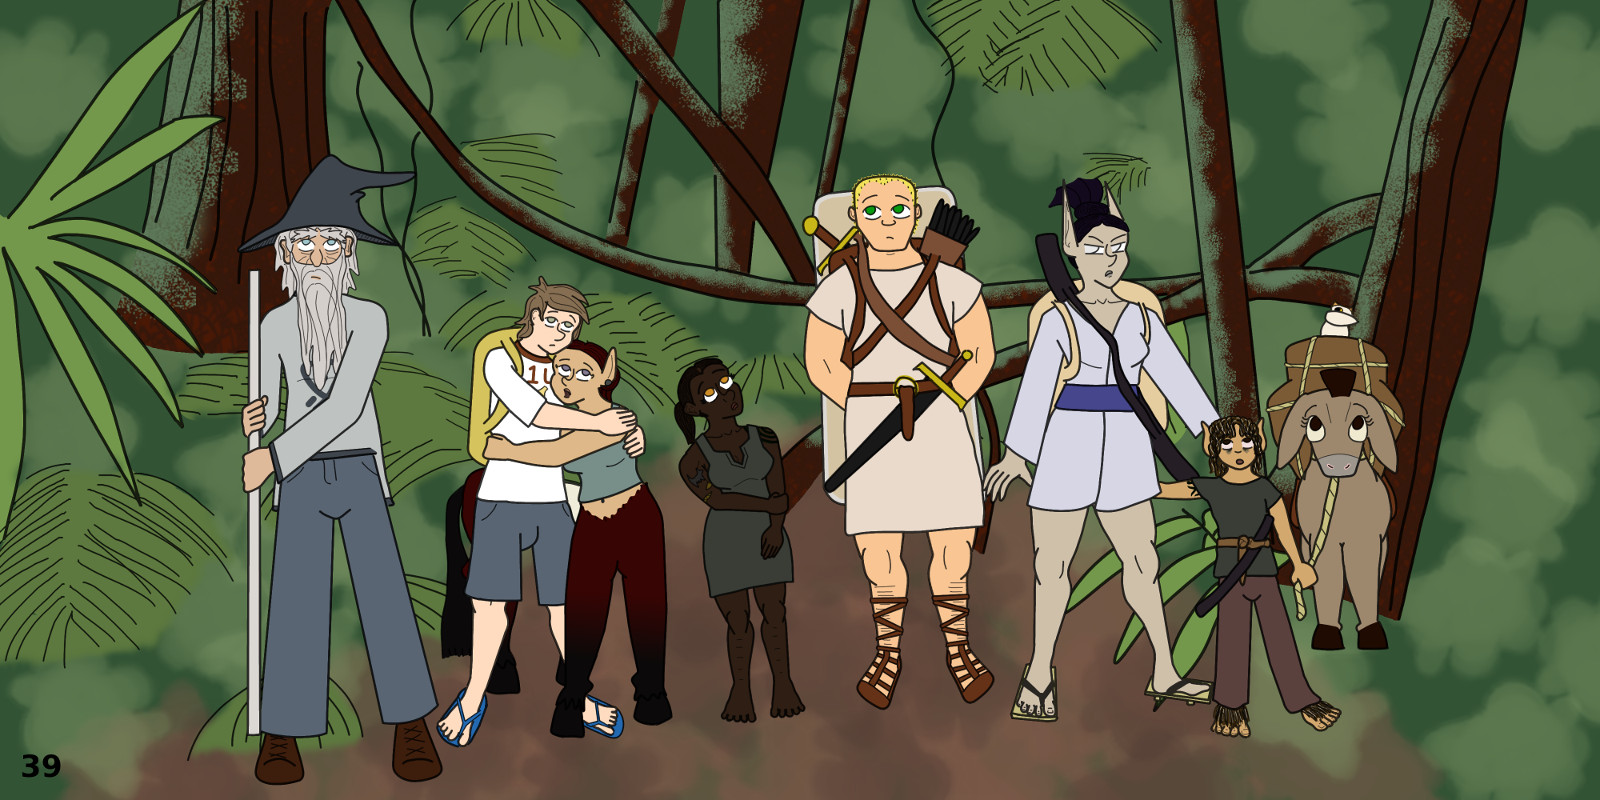 great, now I have to draw jungle every page, why can't we just go back to the Taur Plains, it was so nice there.